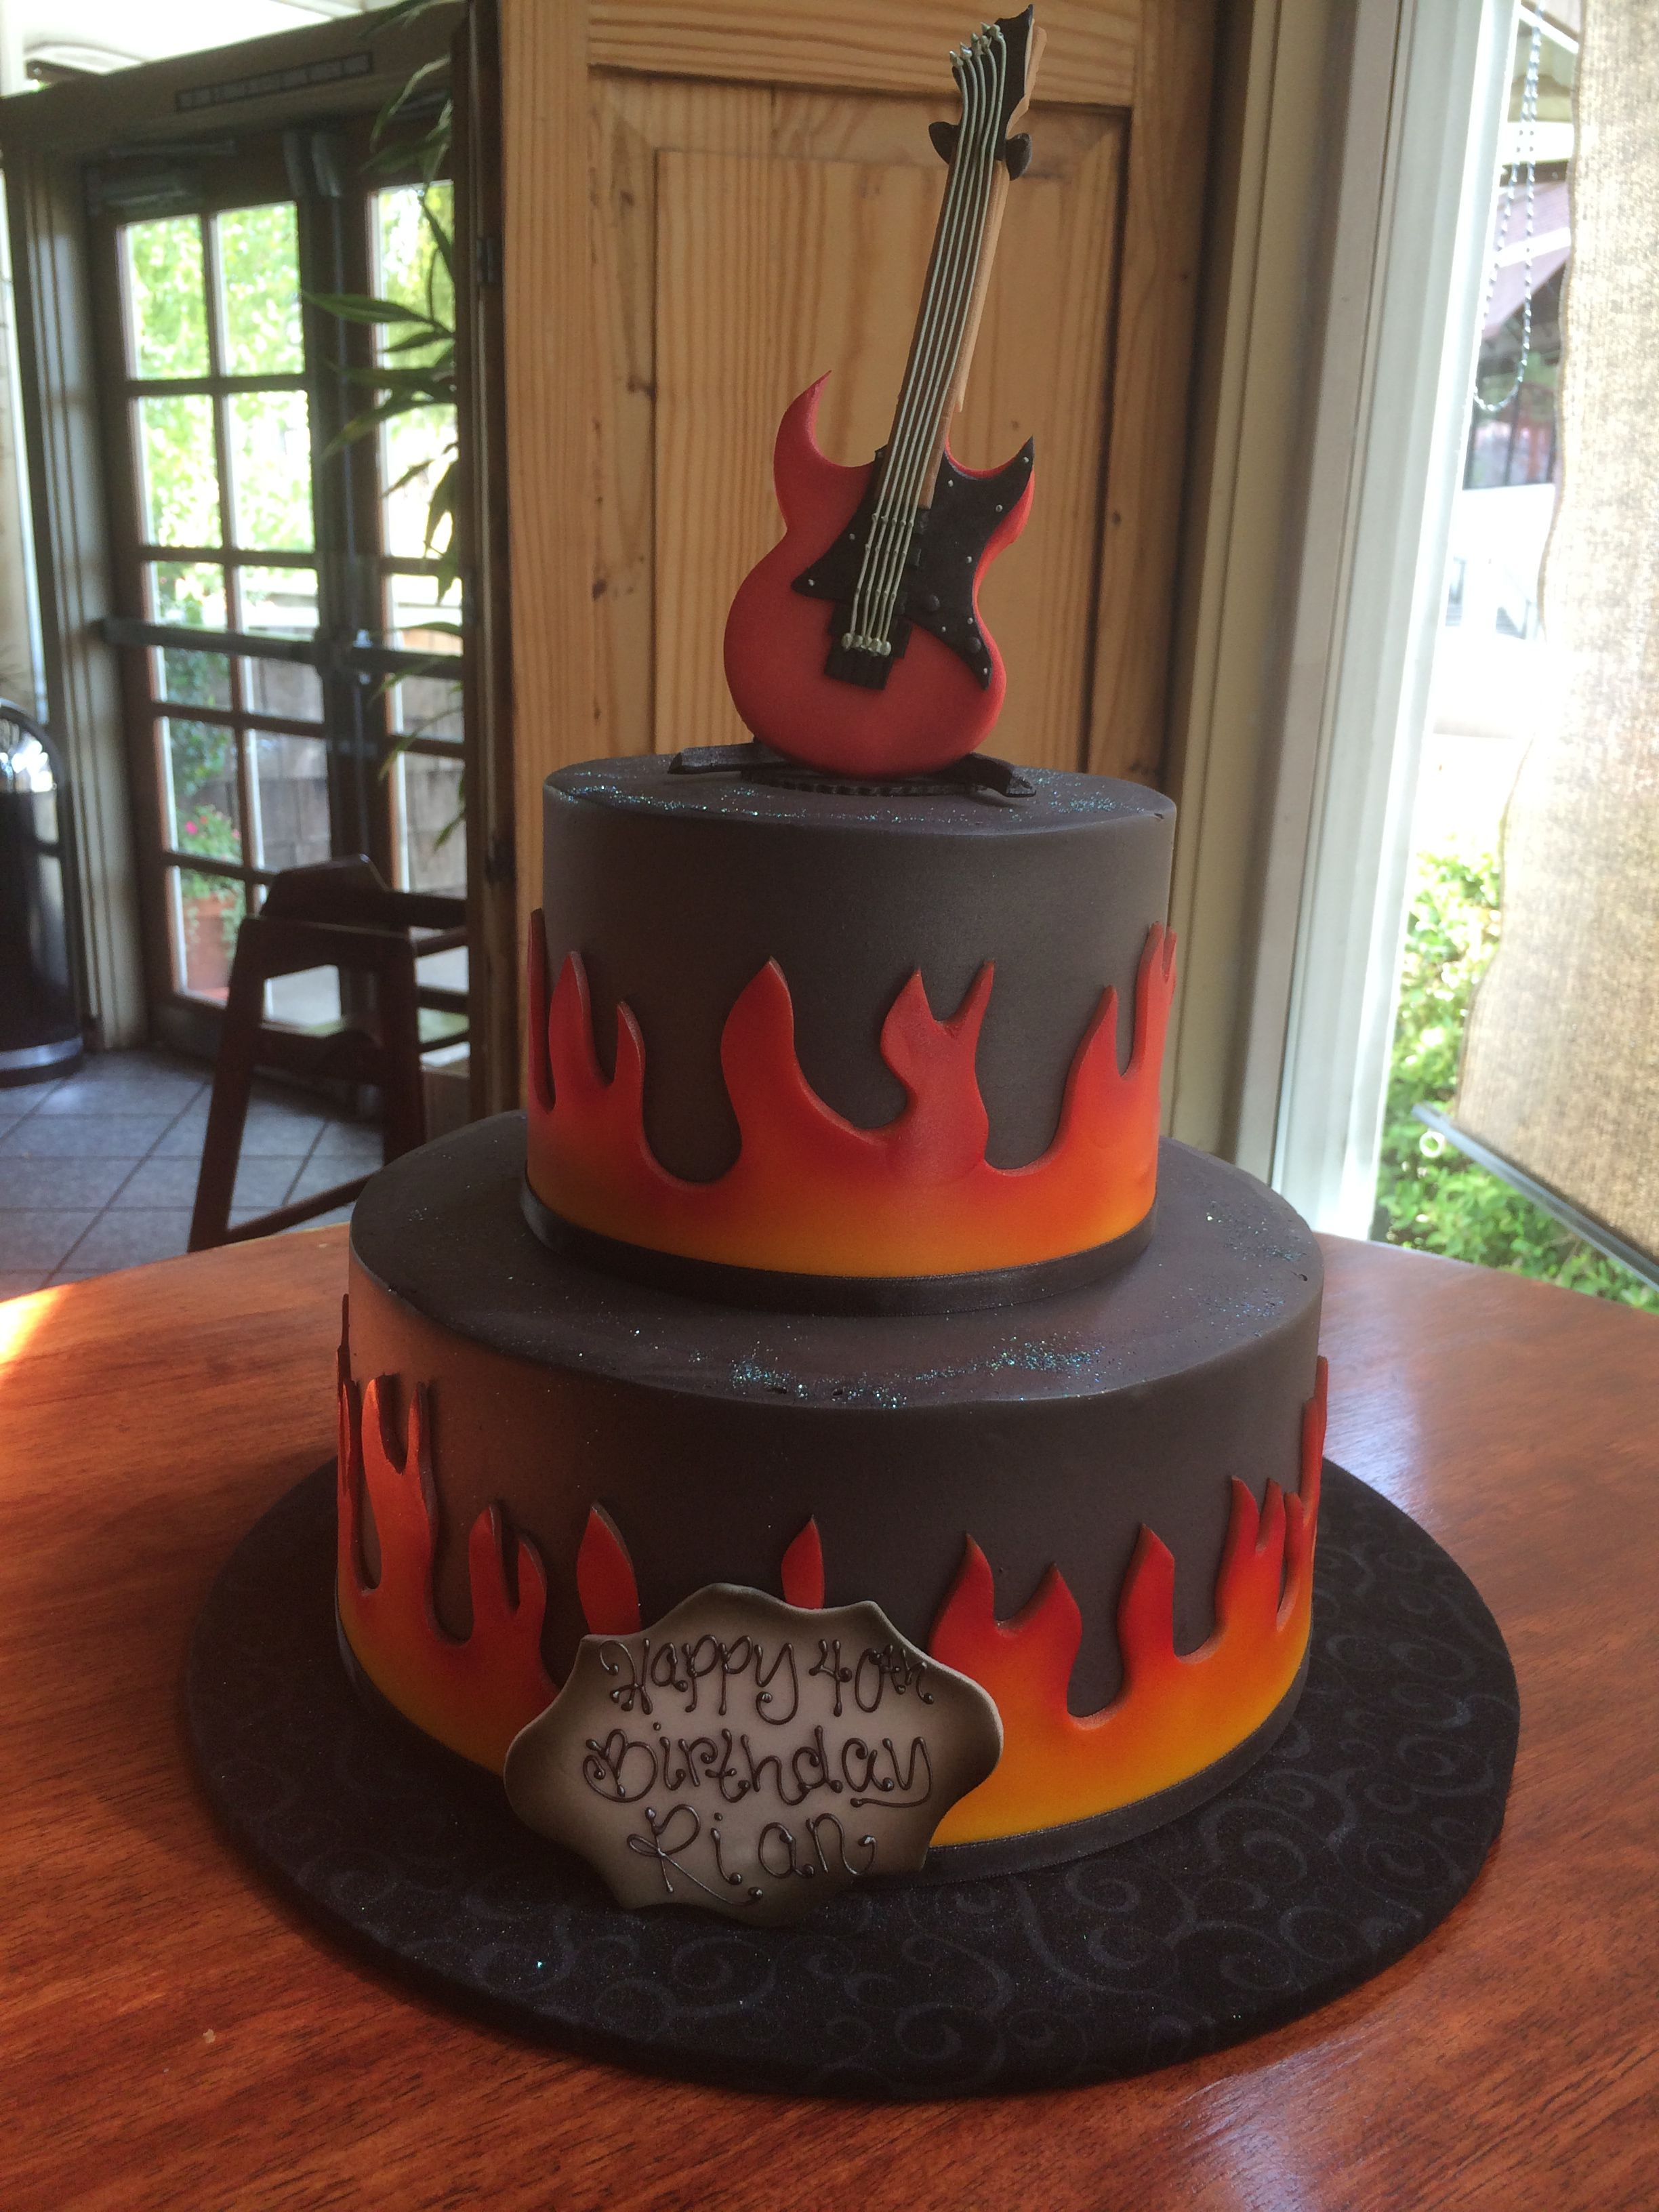 Stupendous Tiered Rock N Roll Themed Birthday Cake With Flames And Electric Birthday Cards Printable Opercafe Filternl